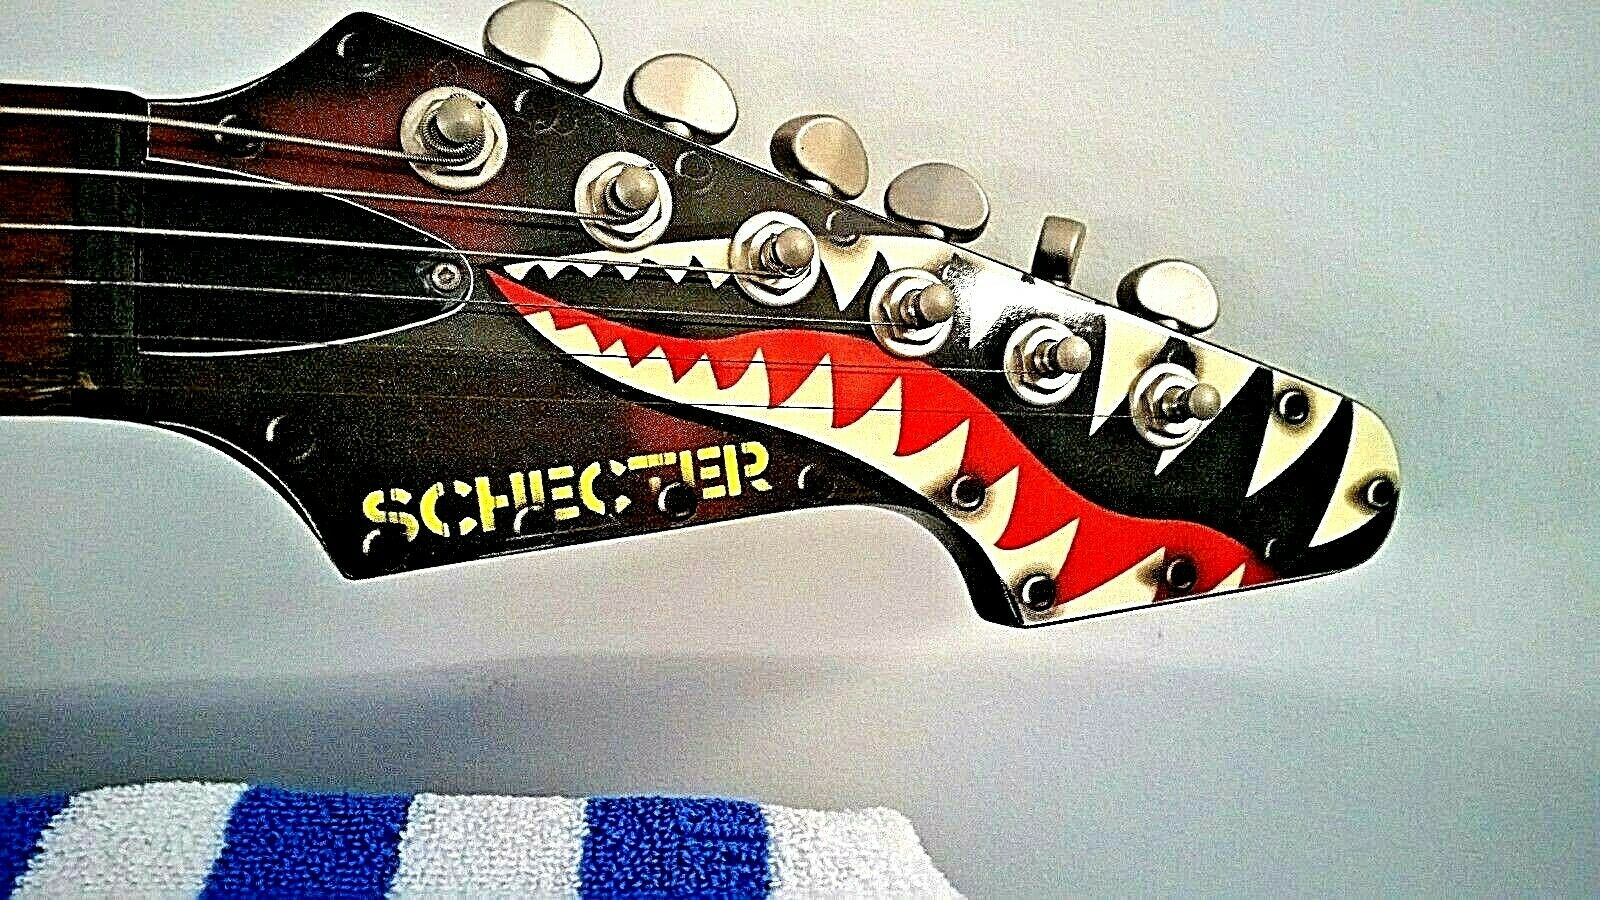 Guitar Schecter Flying Tiger Aviation Series 2004 BRAND NEW